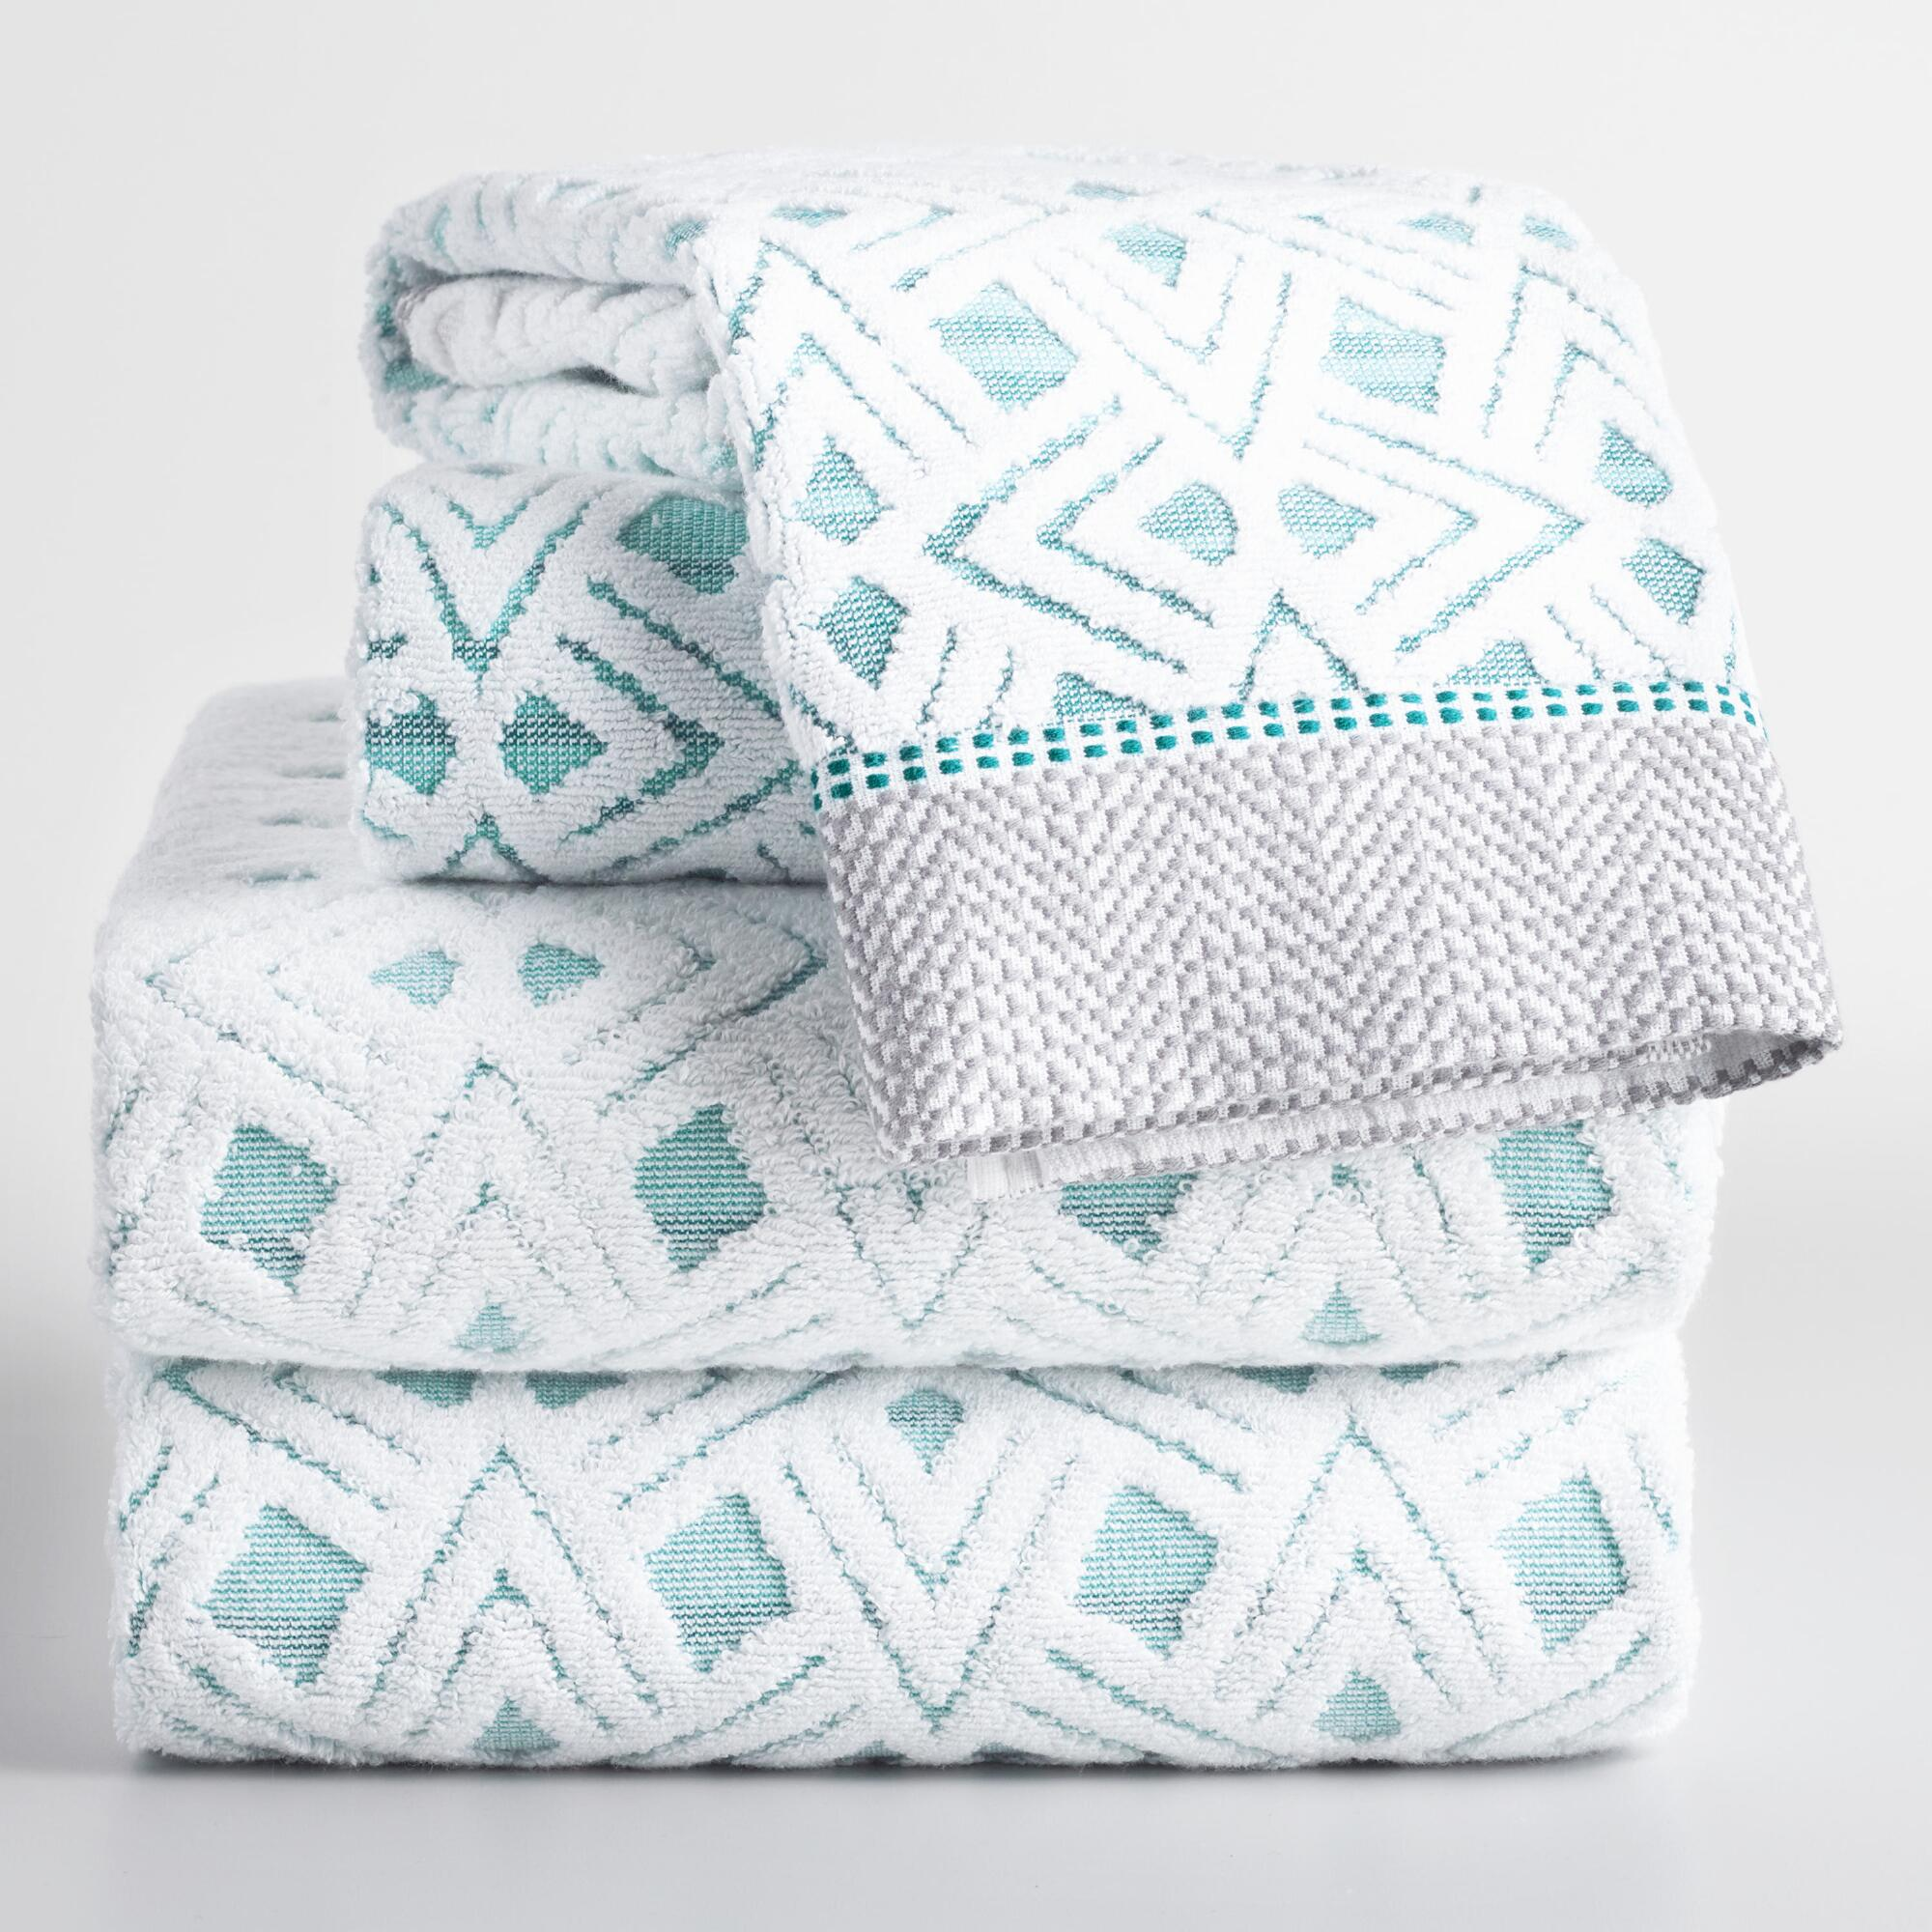 Aqua Geometric Vera Sculpted Towel Collection by World Market